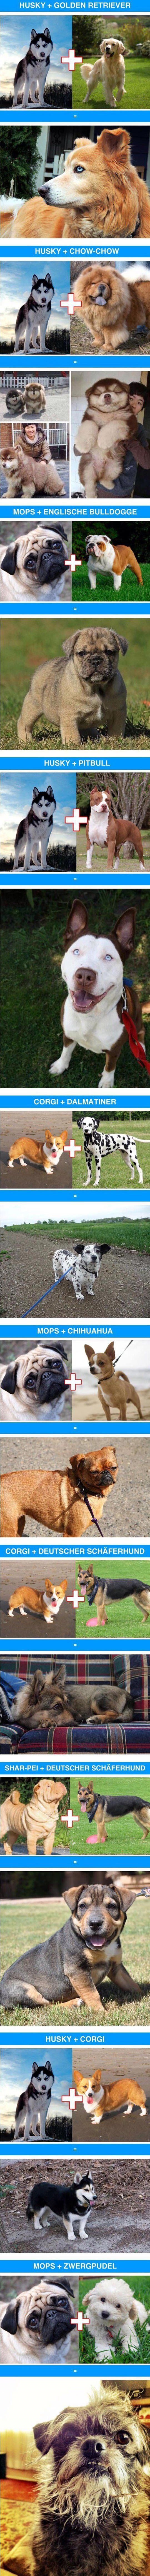 Odd dog cross breed combinations.